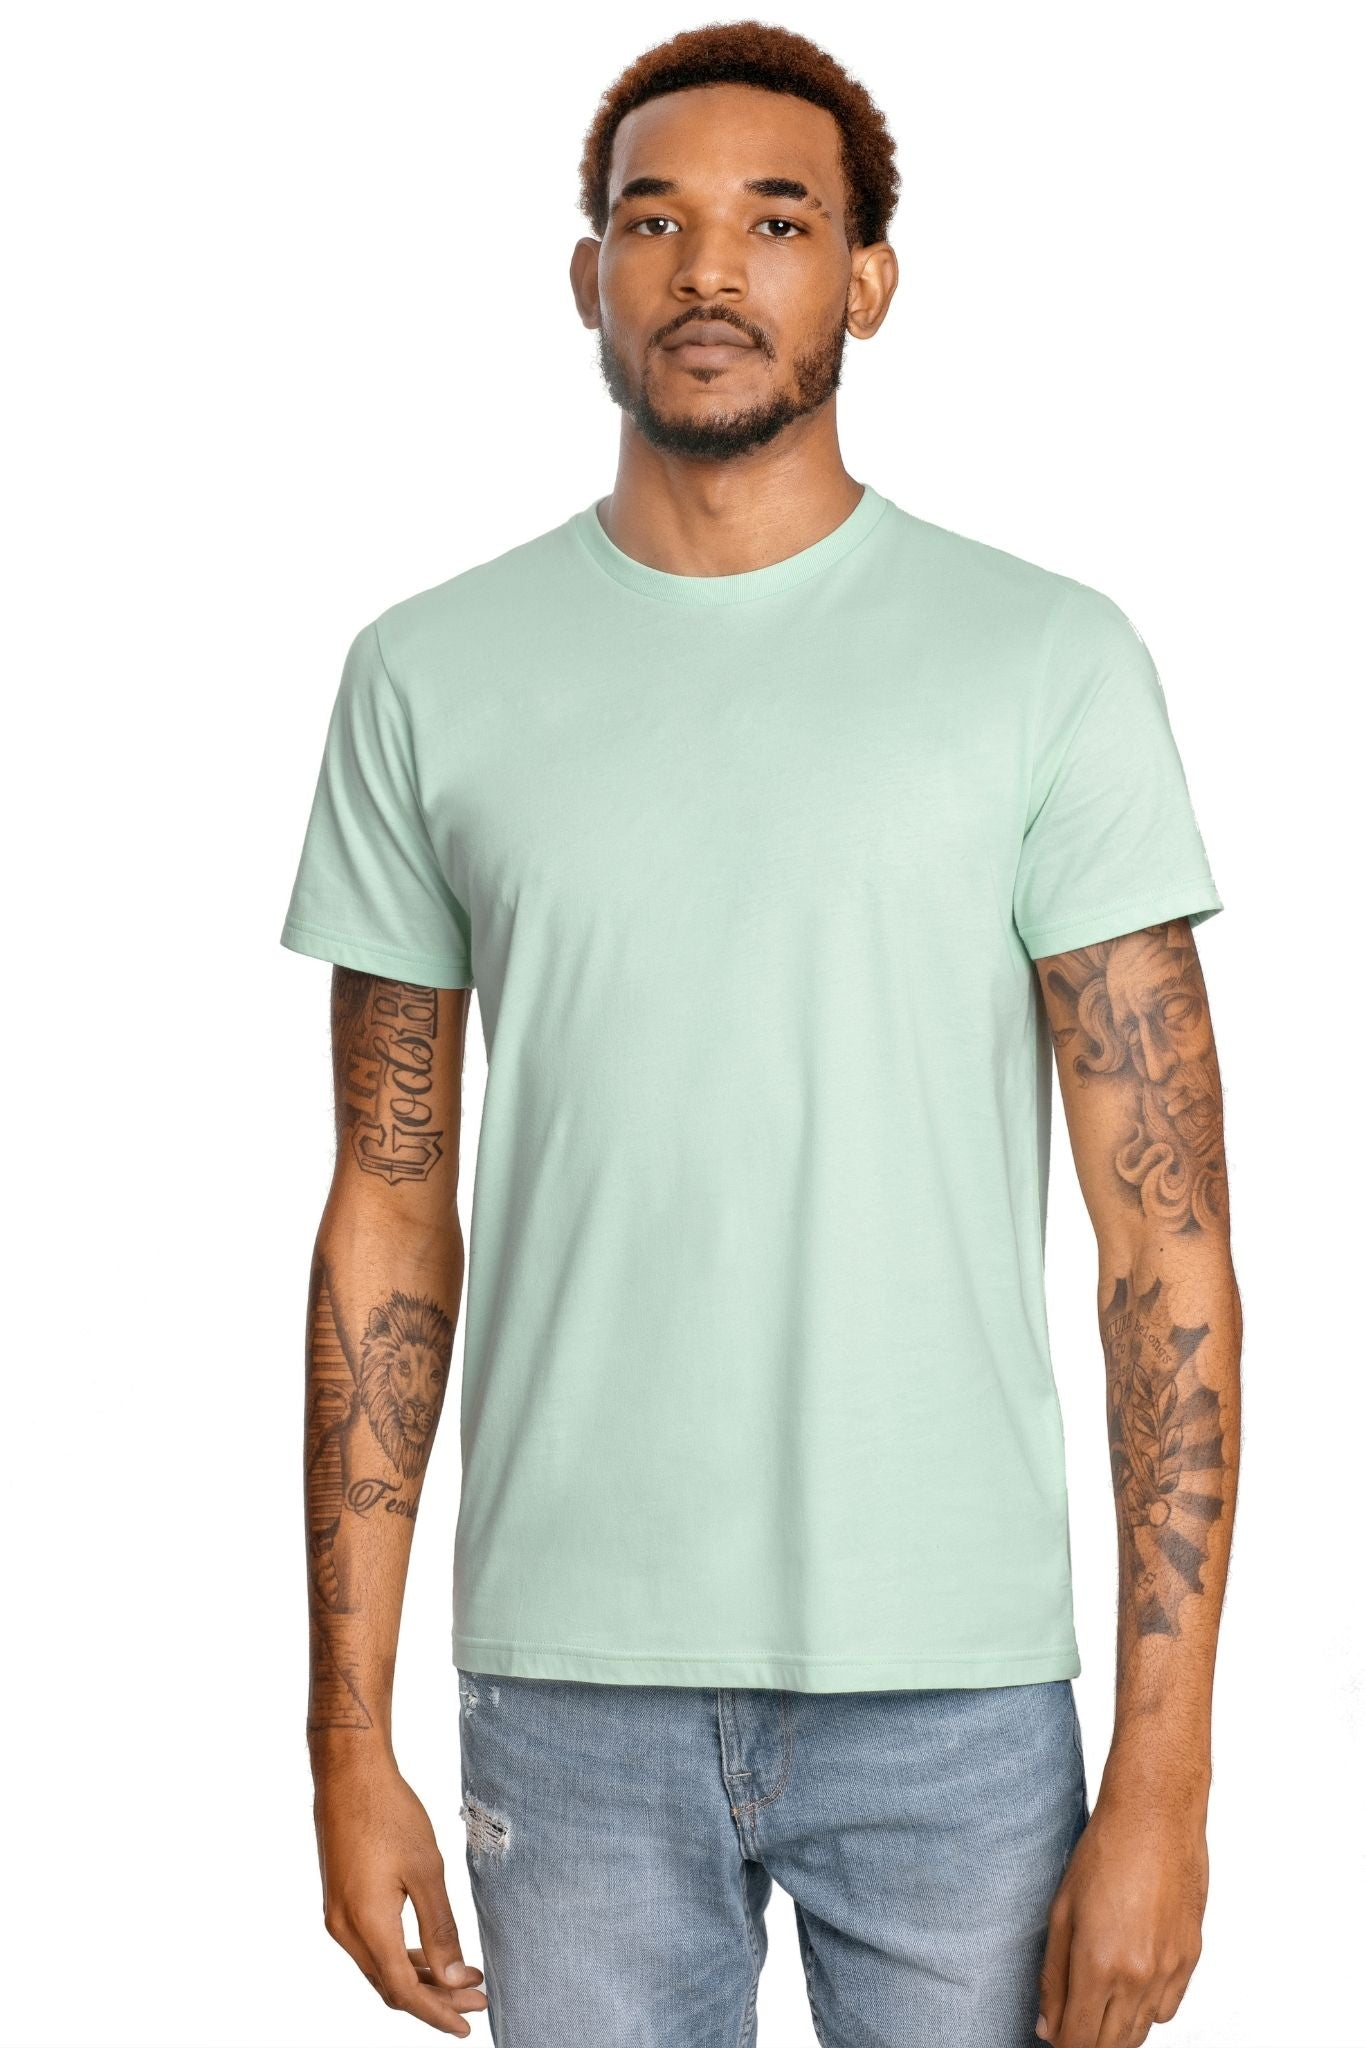 GOLD COTTON Unisex Organic Short Sleeve Tee in Mint